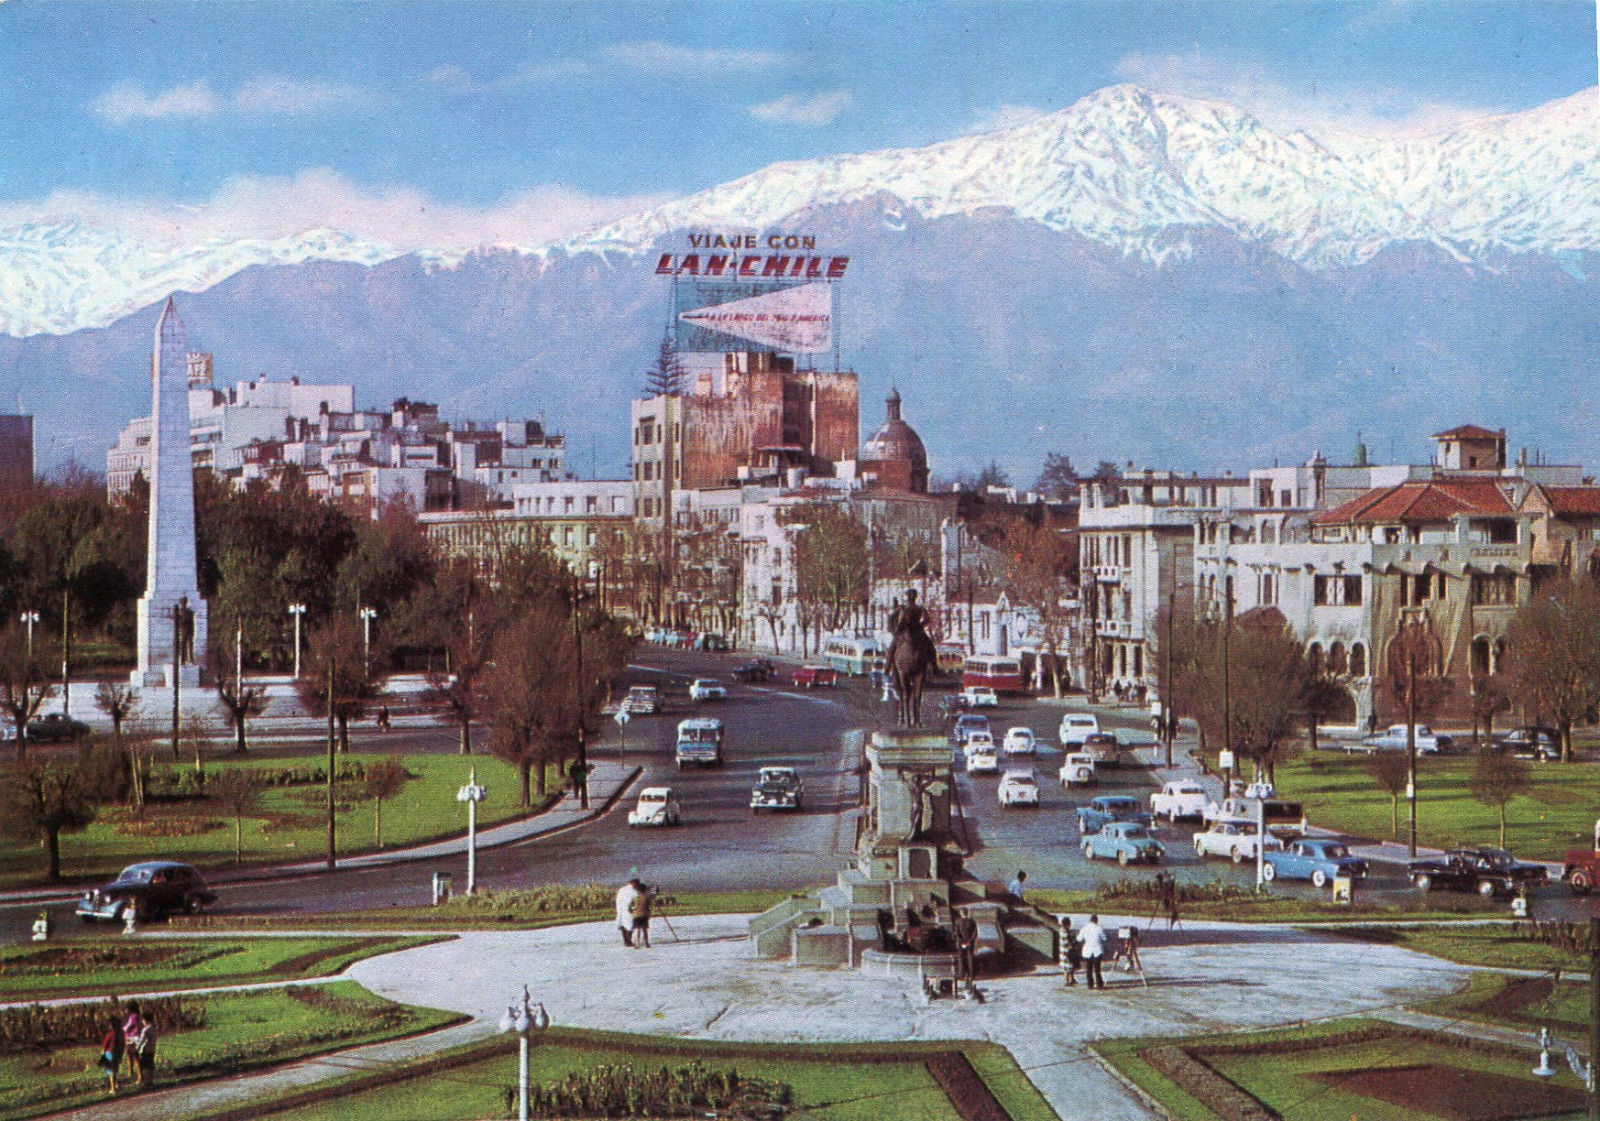 Enterreno - Fotos históricas de chile - fotos antiguas de Chile - Plaza Baquedano de Santiago en 1964